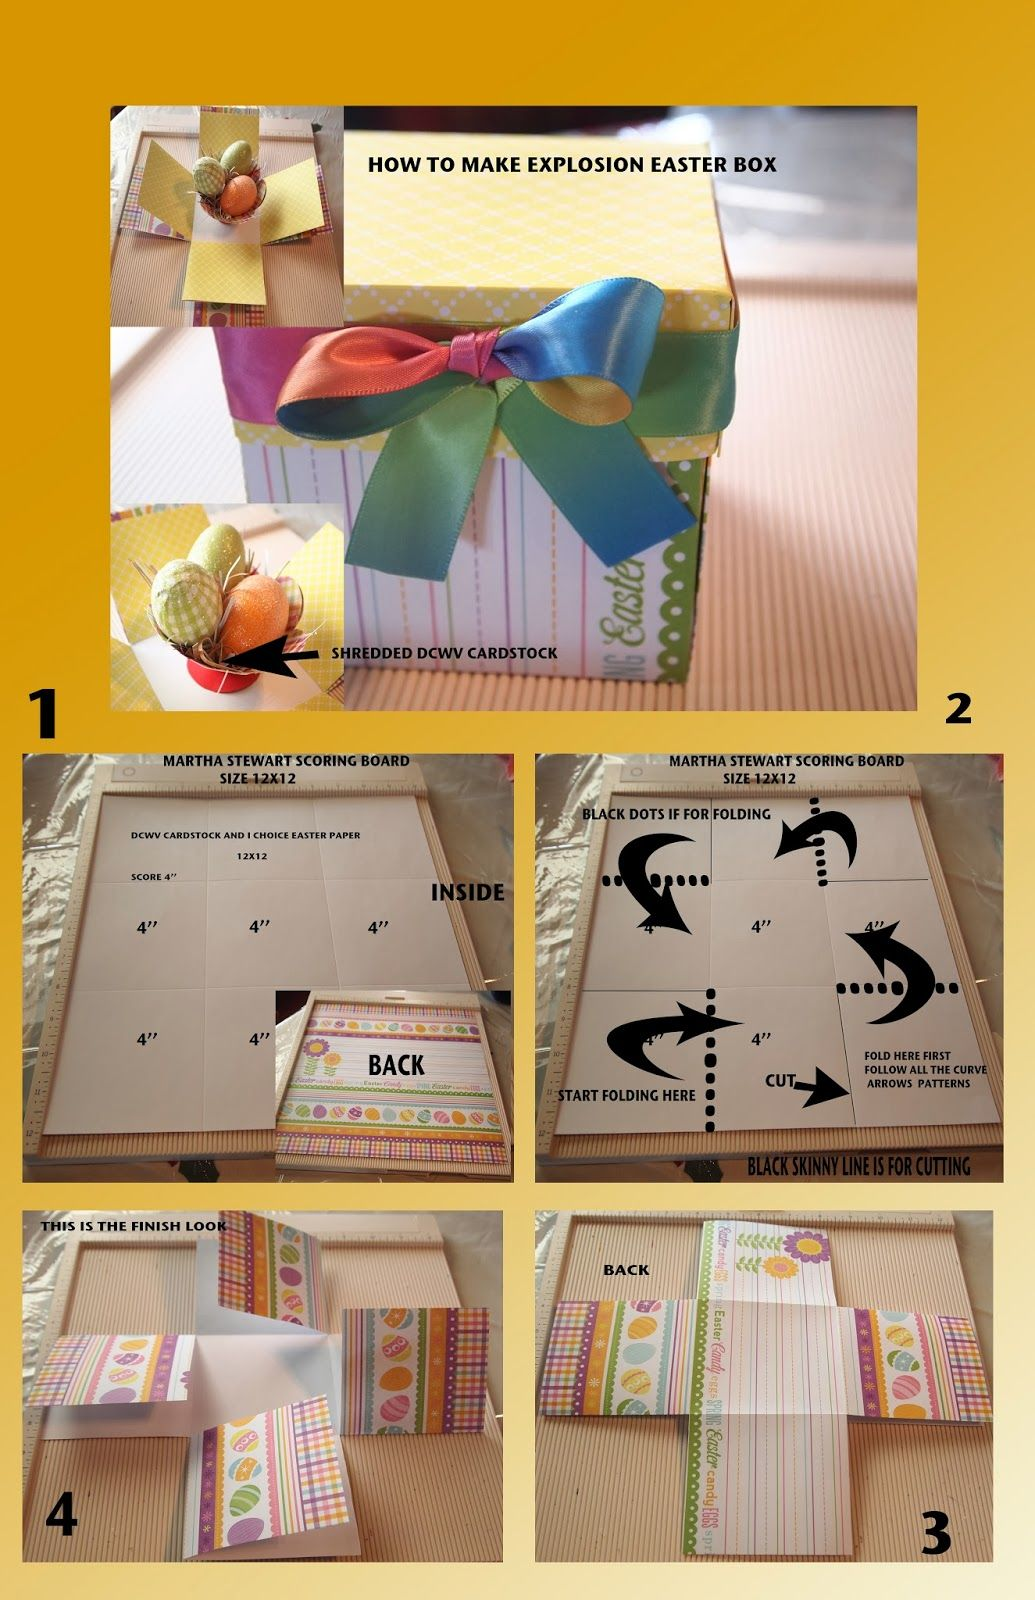 Diy crafting how to make explosion easter gift box craft bits diy crafting how to make explosion easter gift box negle Image collections